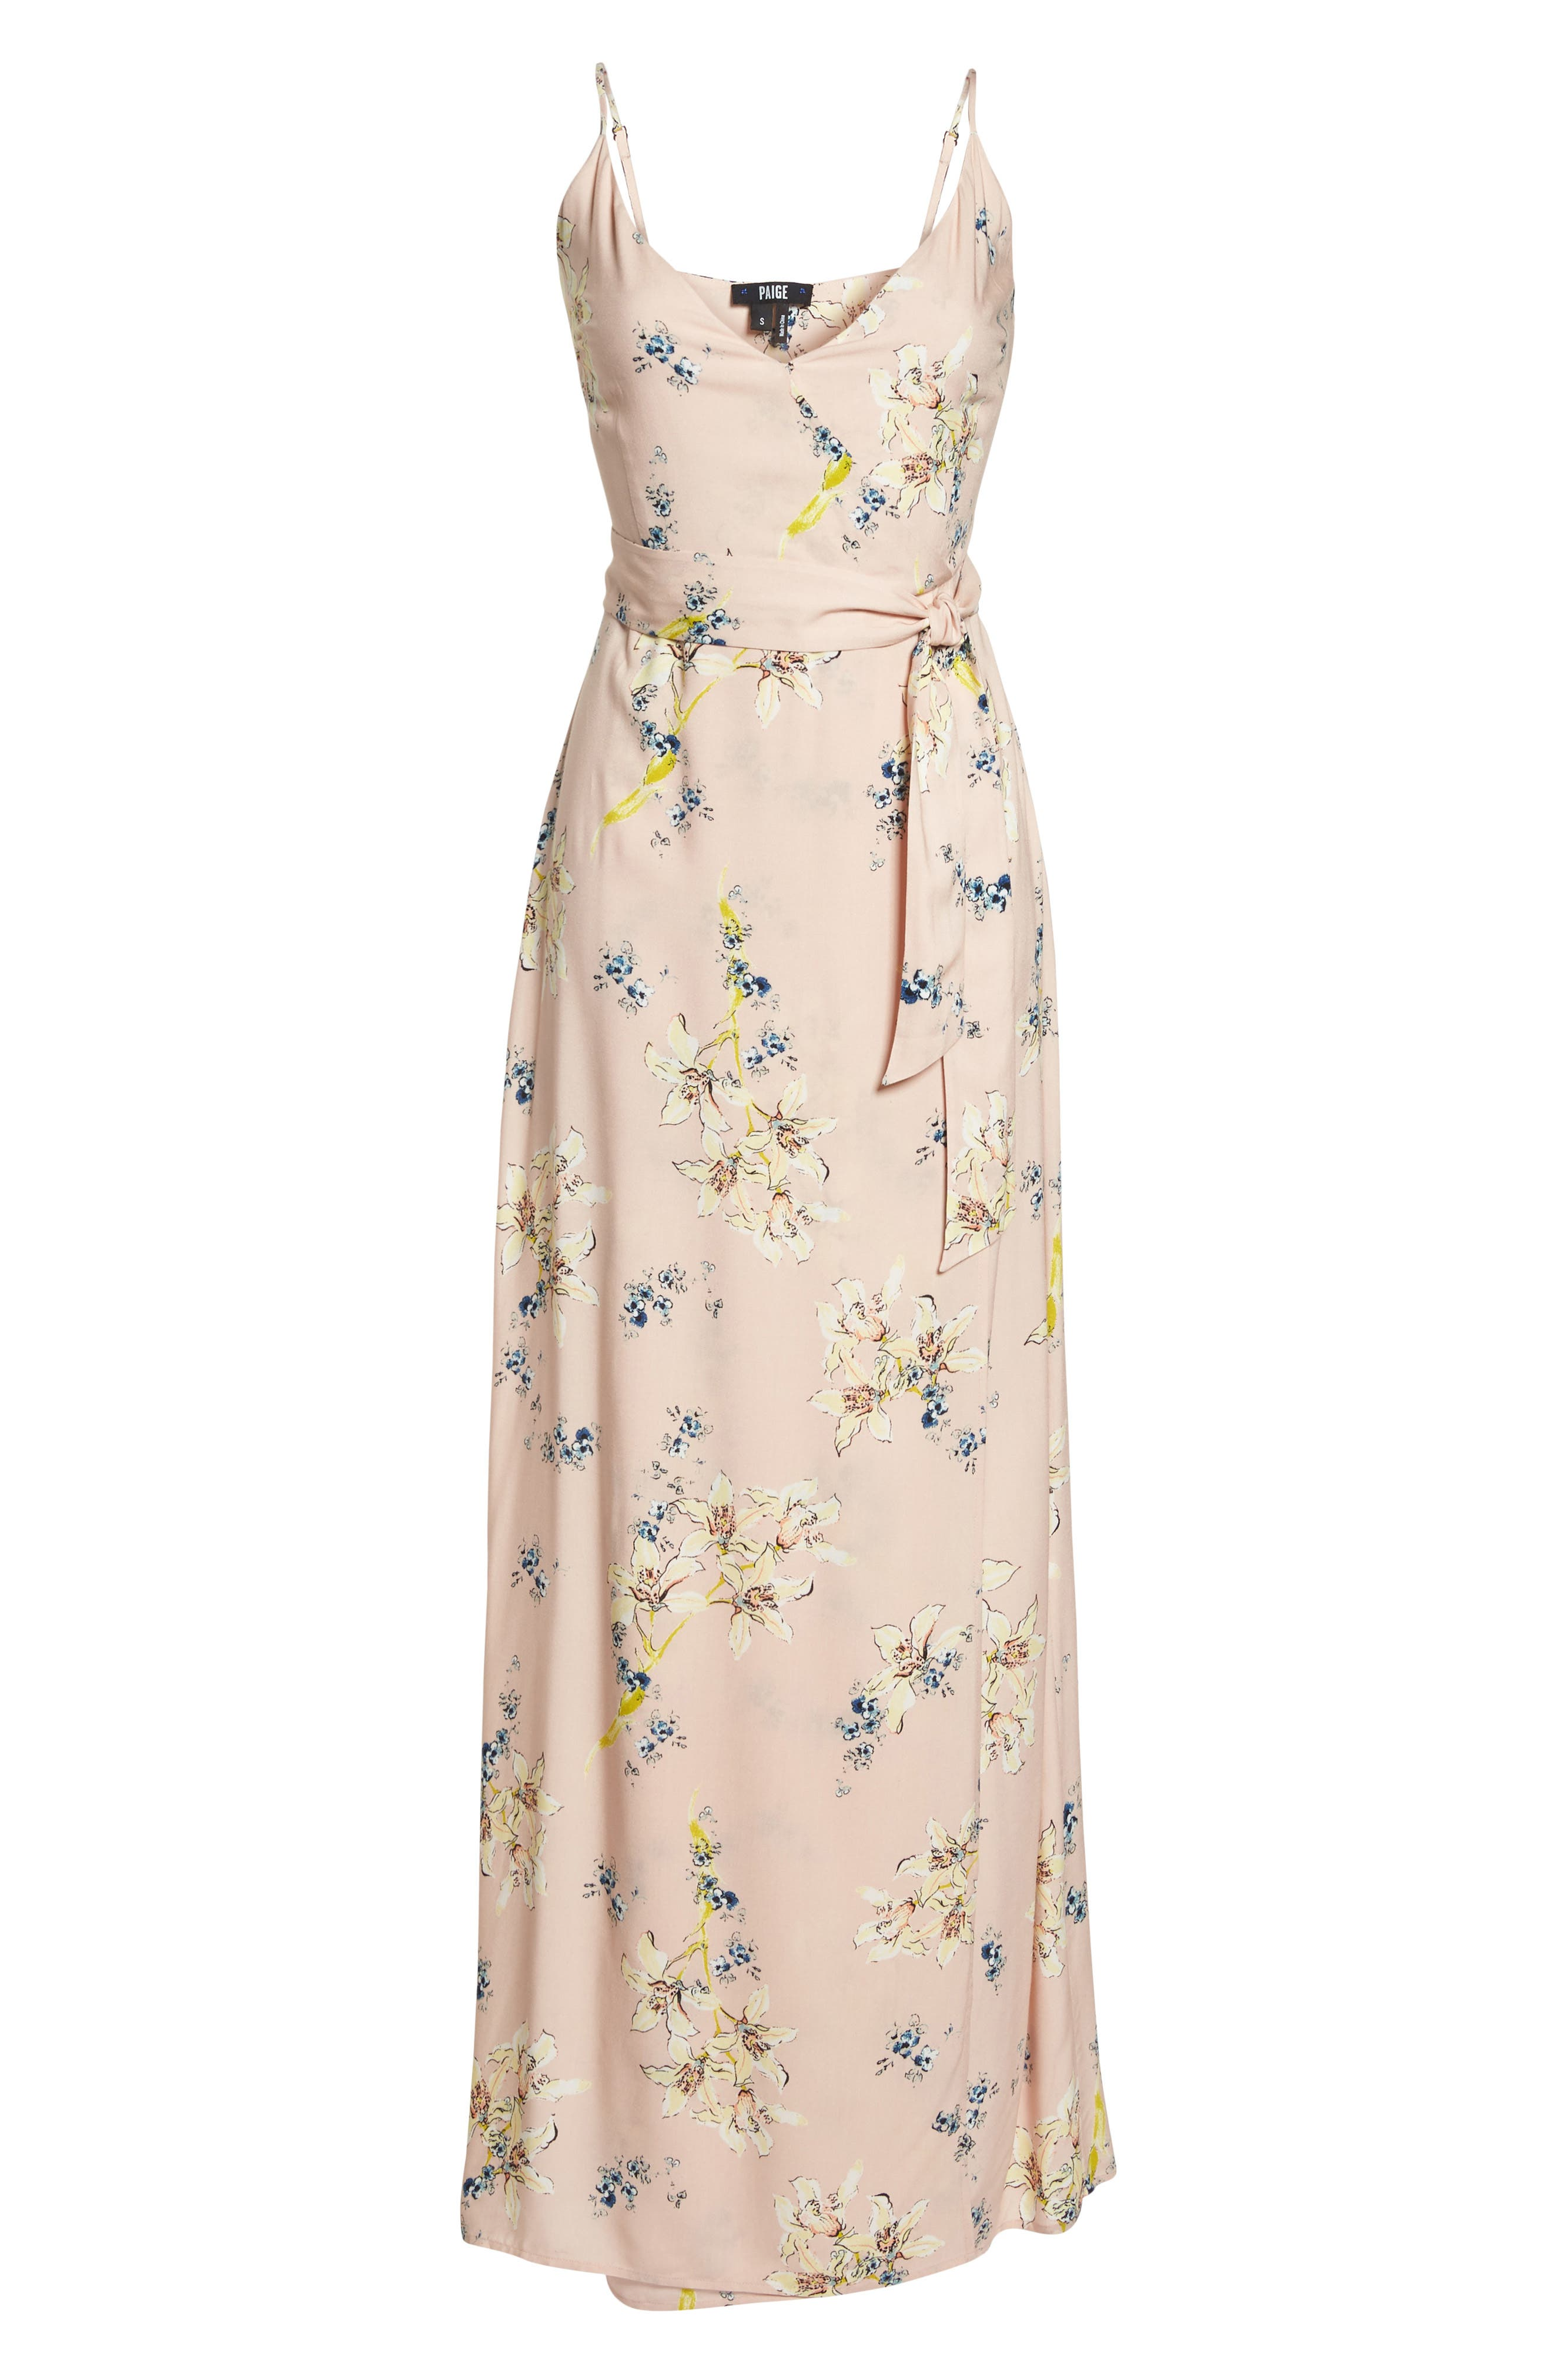 Regina Floral Print Maxi Dress,                             Alternate thumbnail 7, color,                             700